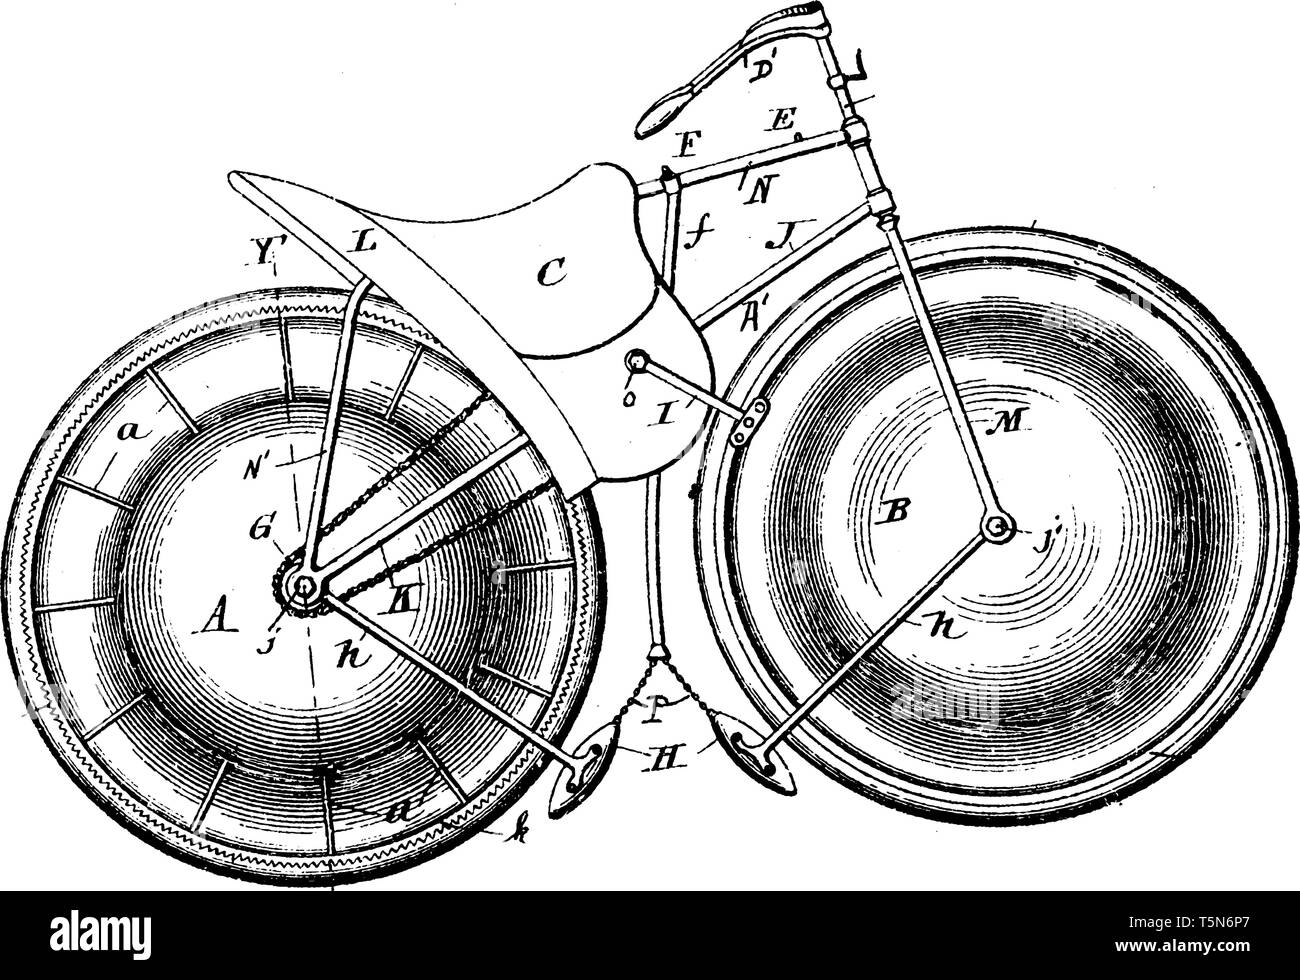 Marine Velocipede is a form of waterborne transport primarily for recreational use powered through the use of pedals, vintage line drawing or engravin - Stock Image